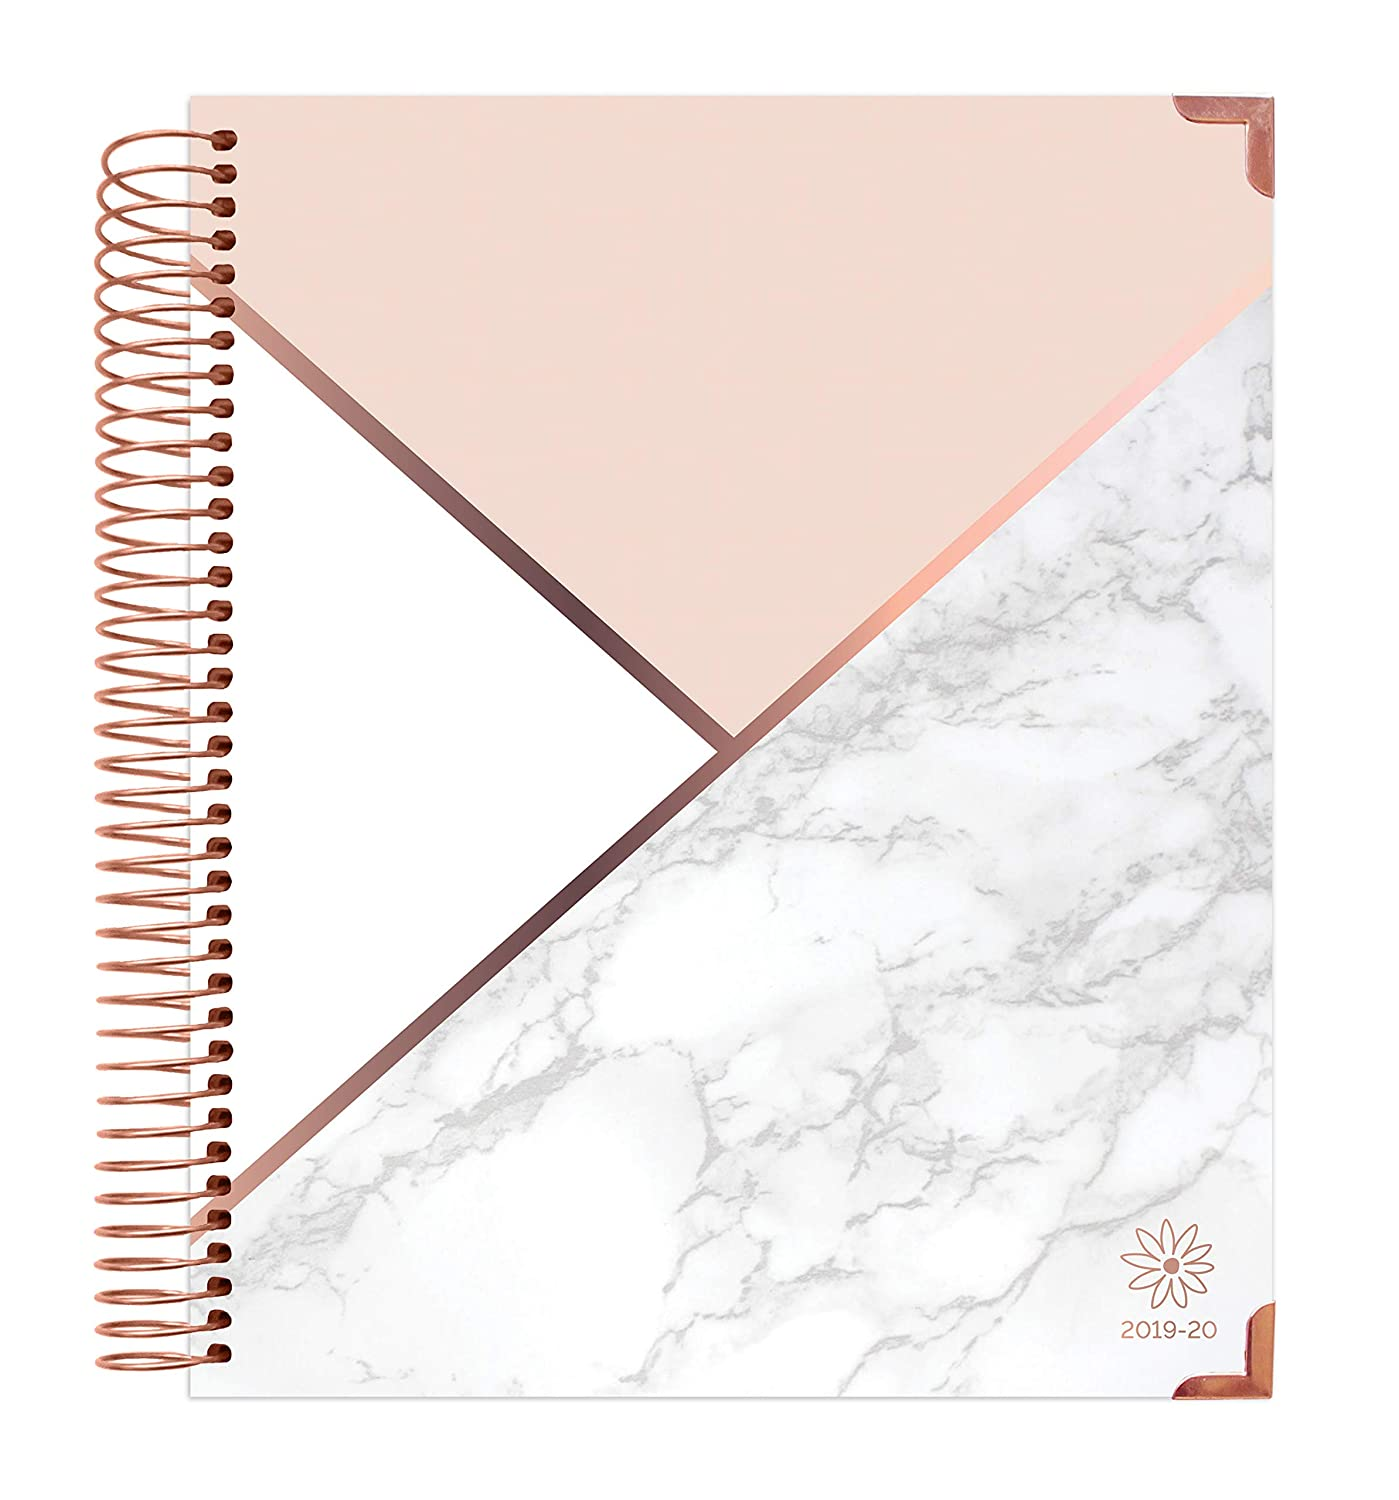 graphic about Daily Planners named bloom day by day planners 2019-2020 Hardcover Educational Yr Eyesight Planner (August 2019 - July 2020) - Regular and Weekly Column Viewpoint Calendar Organizer -